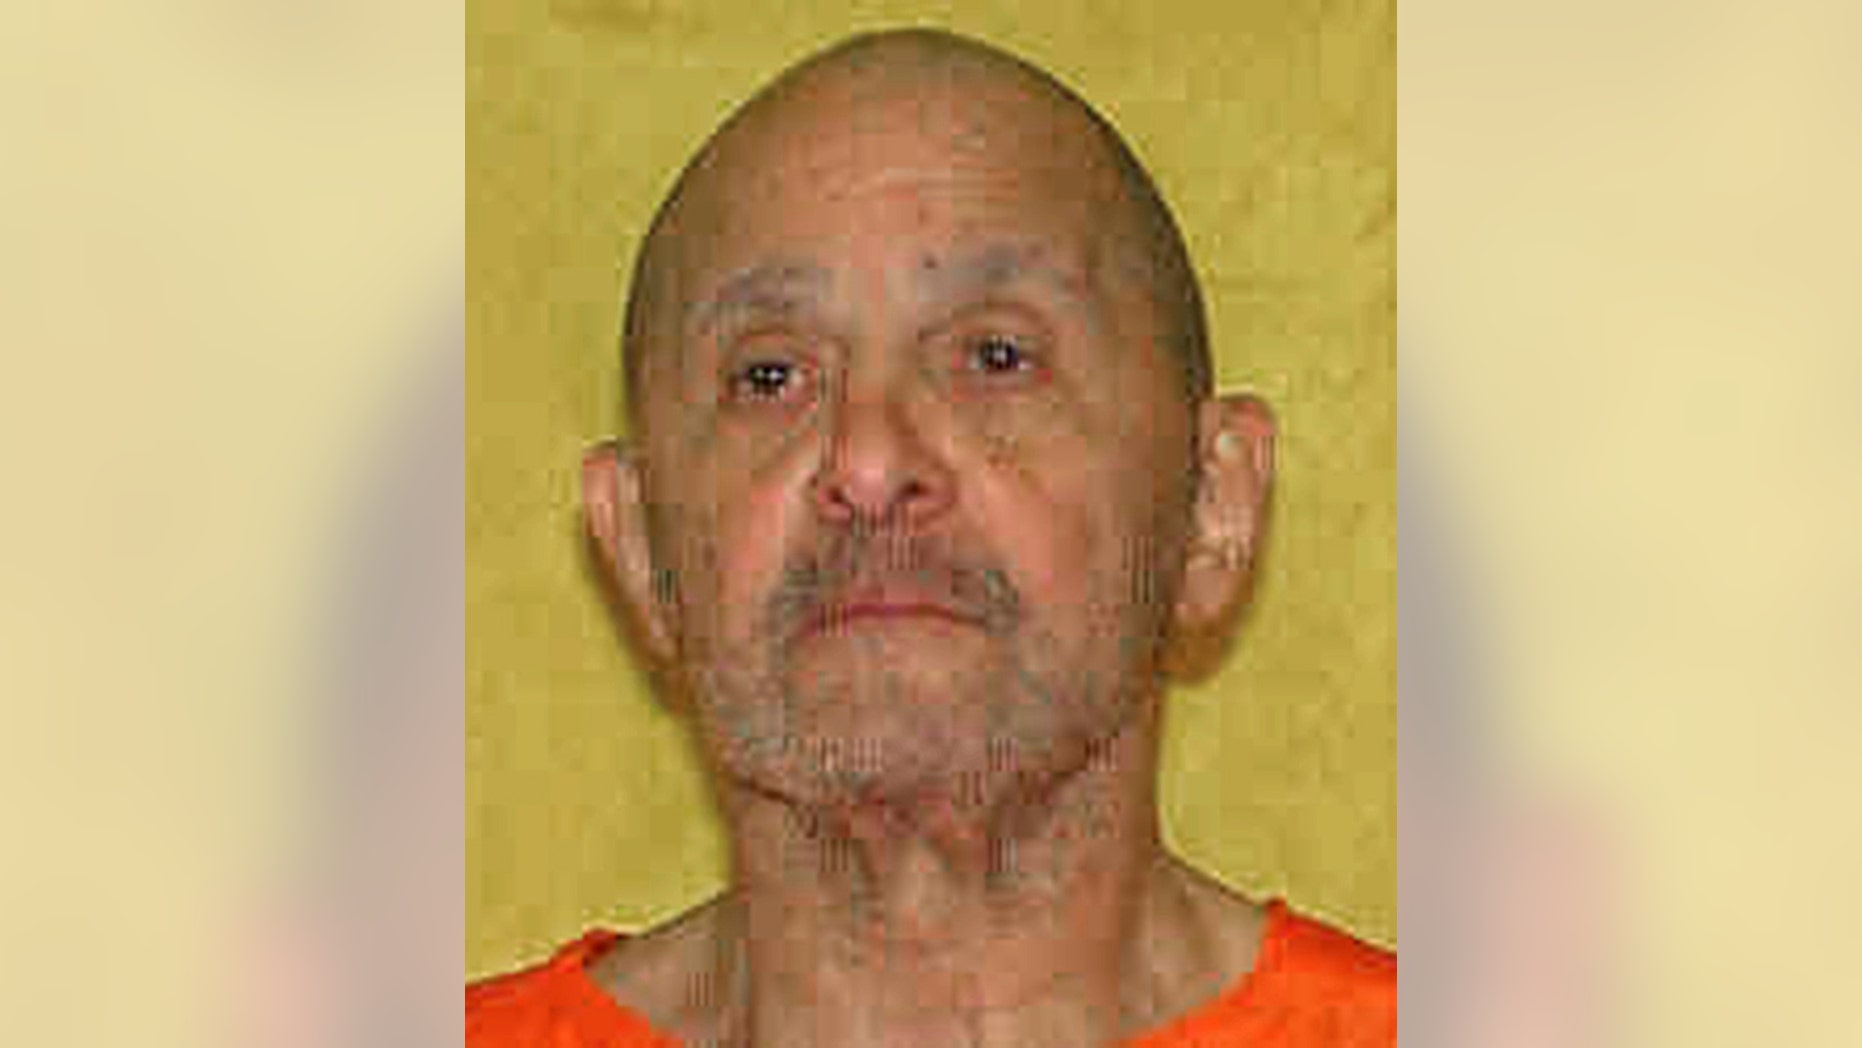 Convicted murderer Alva Campbell is scheduled for execution in Ohio on Nov. 15, 2017